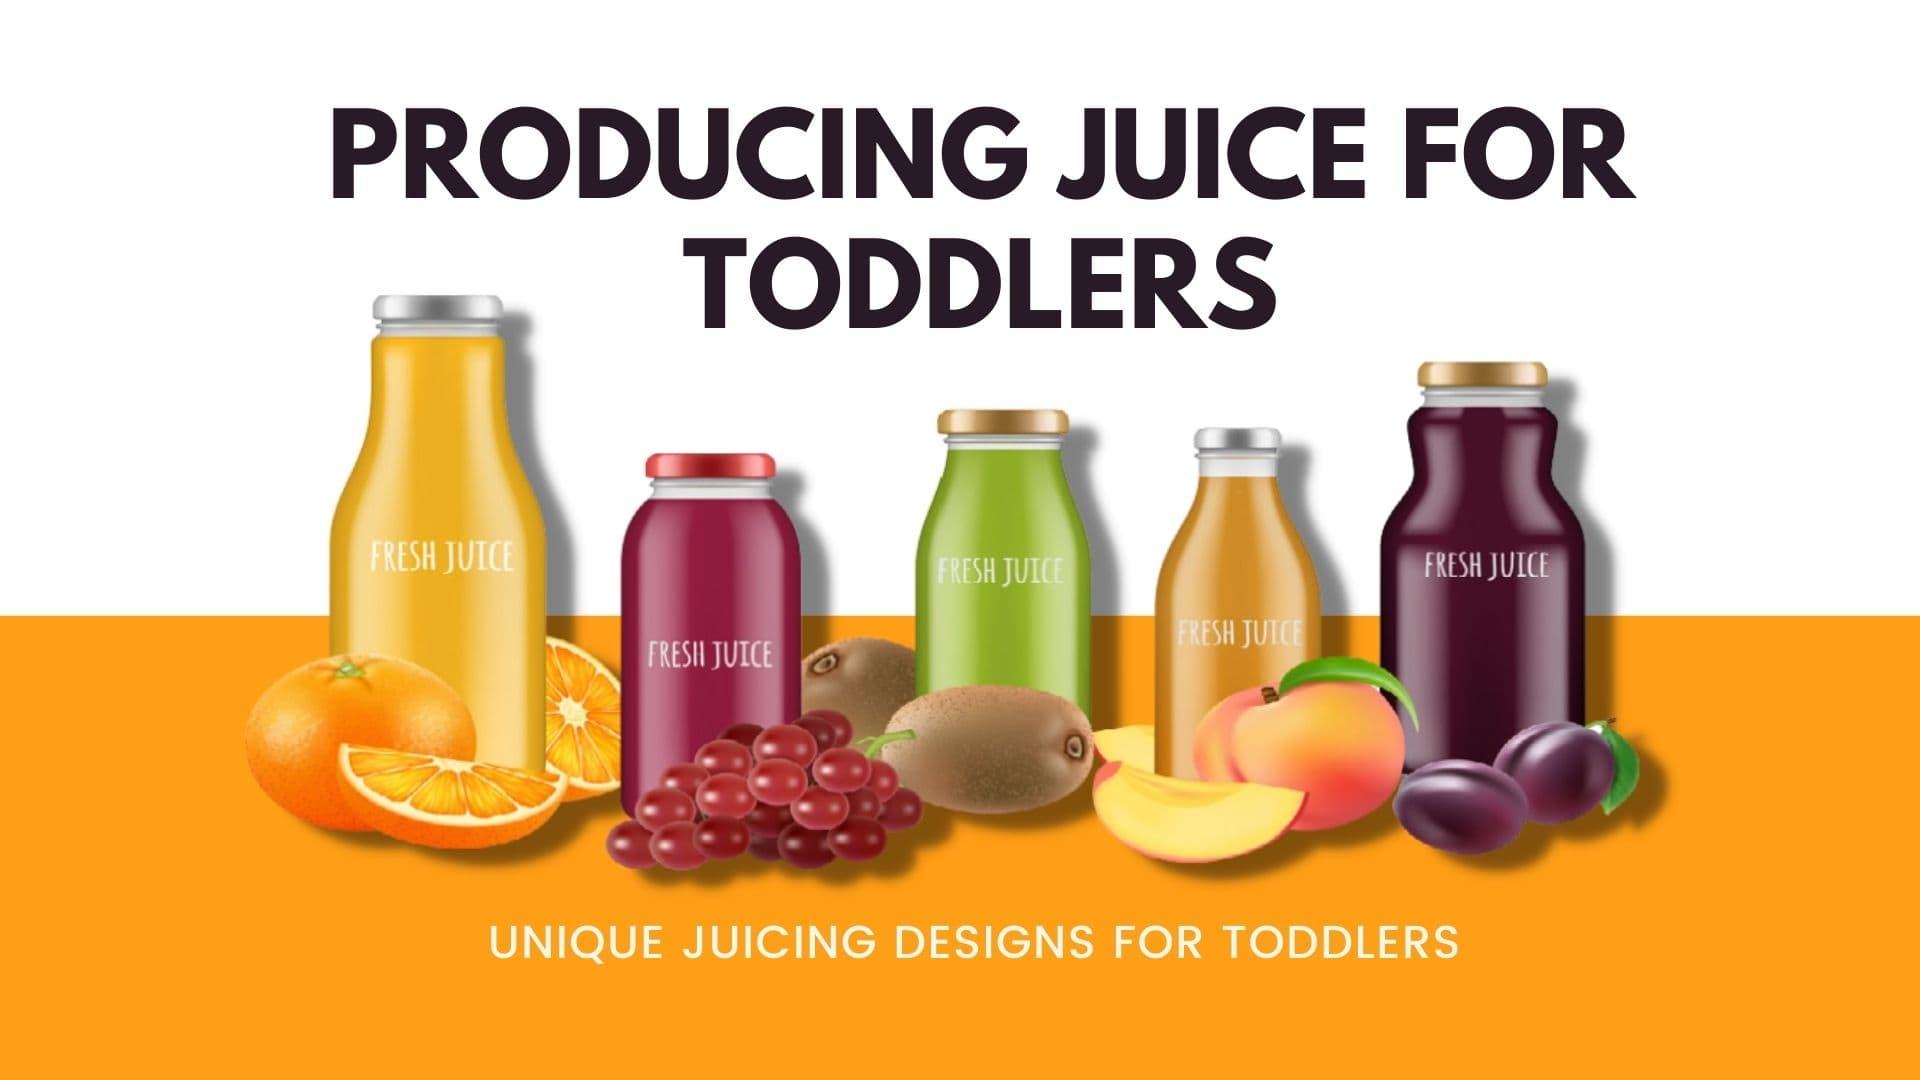 Producing juice for toddlers